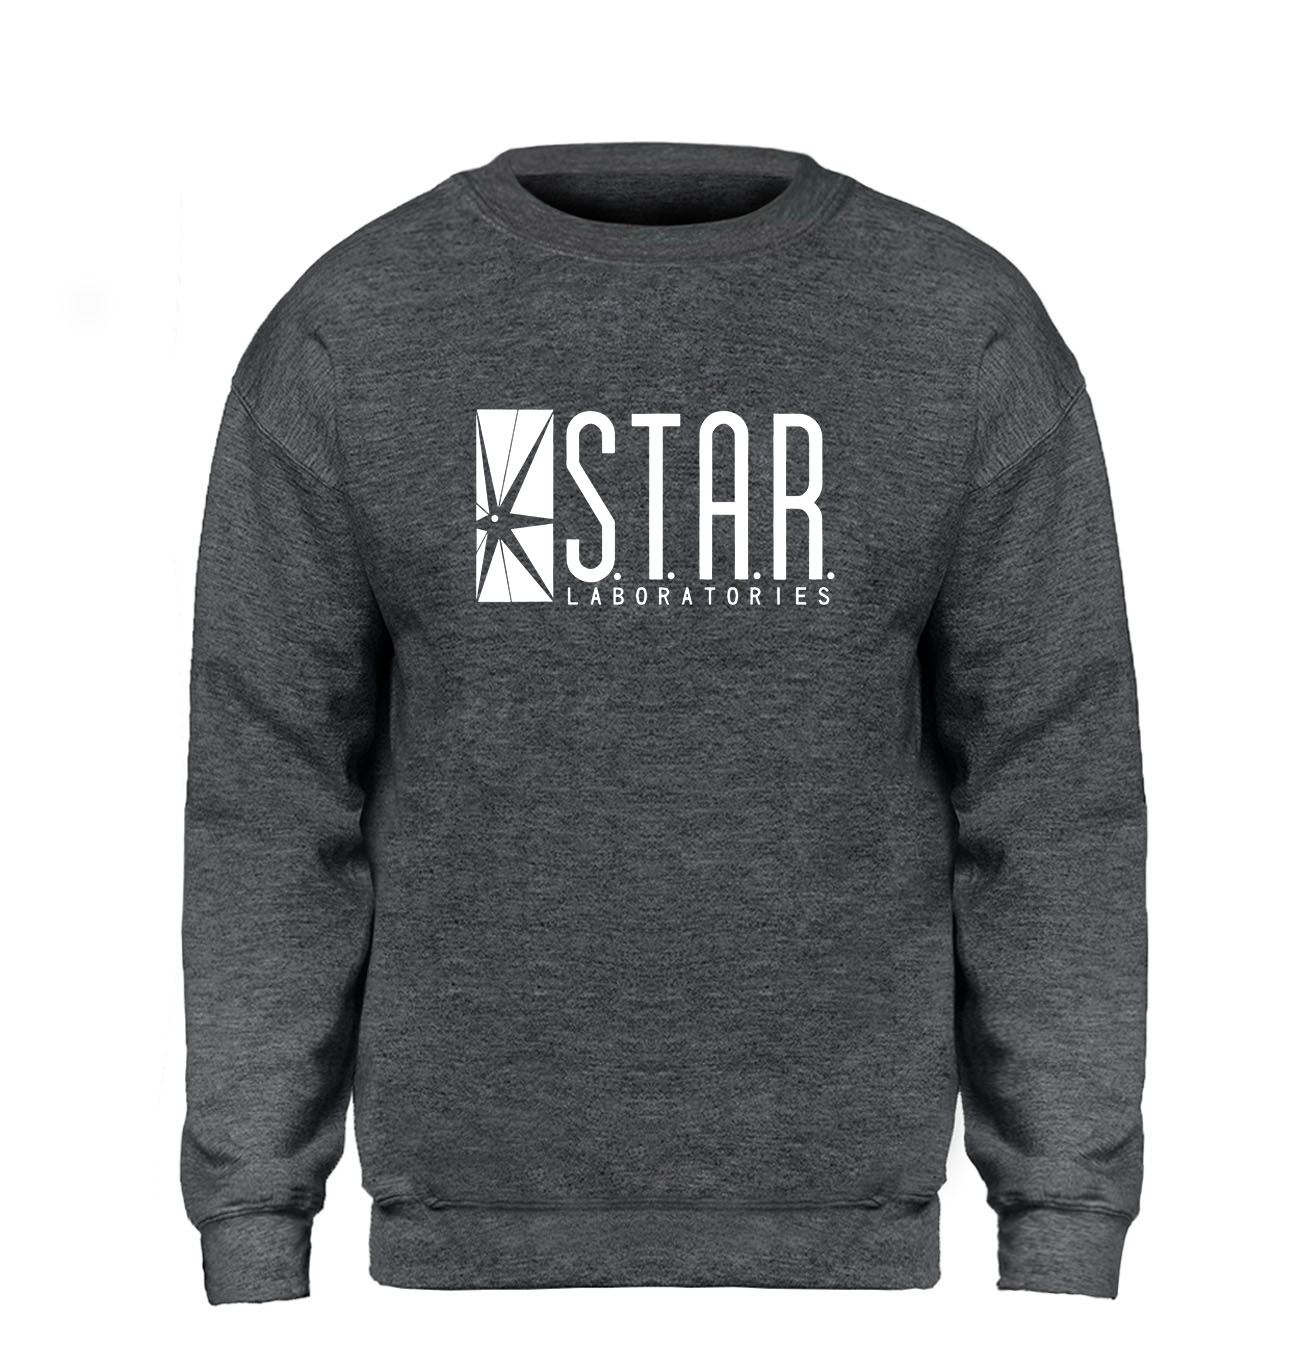 Star Labs Sweatshirt Superman Serie Hoodie Männer Jumper Die Flash Gotham City Comic Bücher Schwarz Sweatshirts Fleece Streetwear XXL